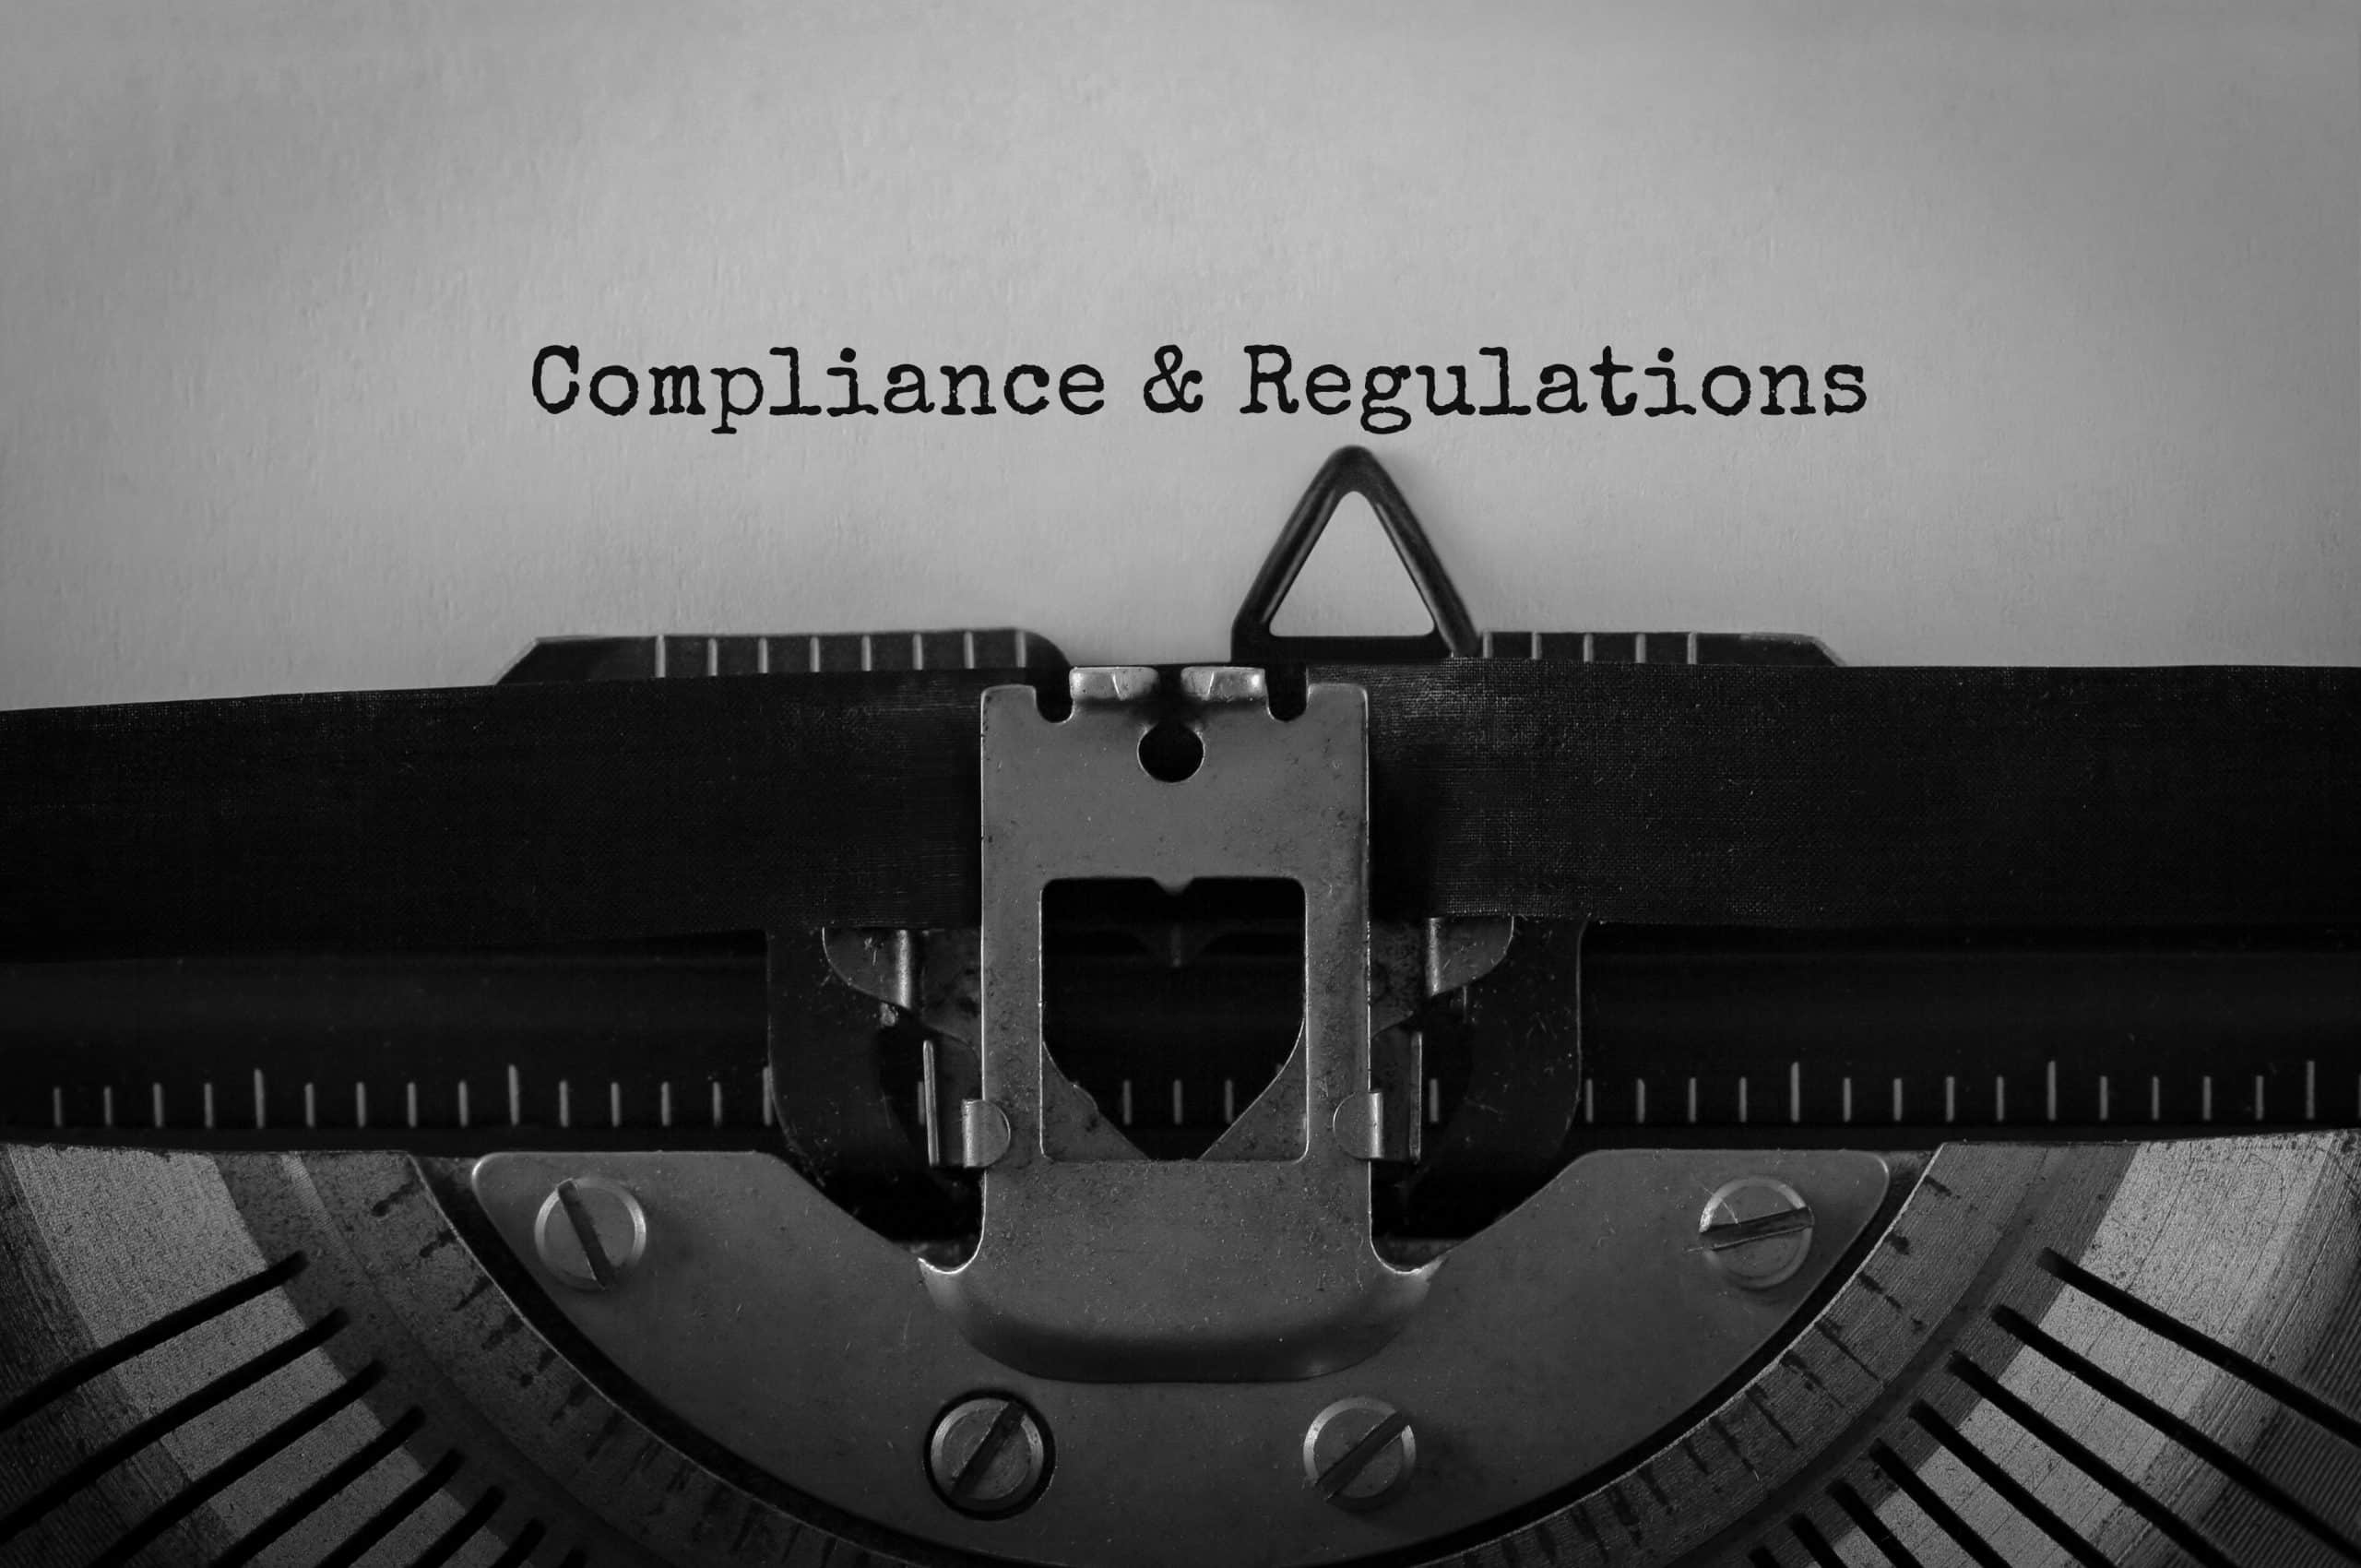 Compliance & Regulations